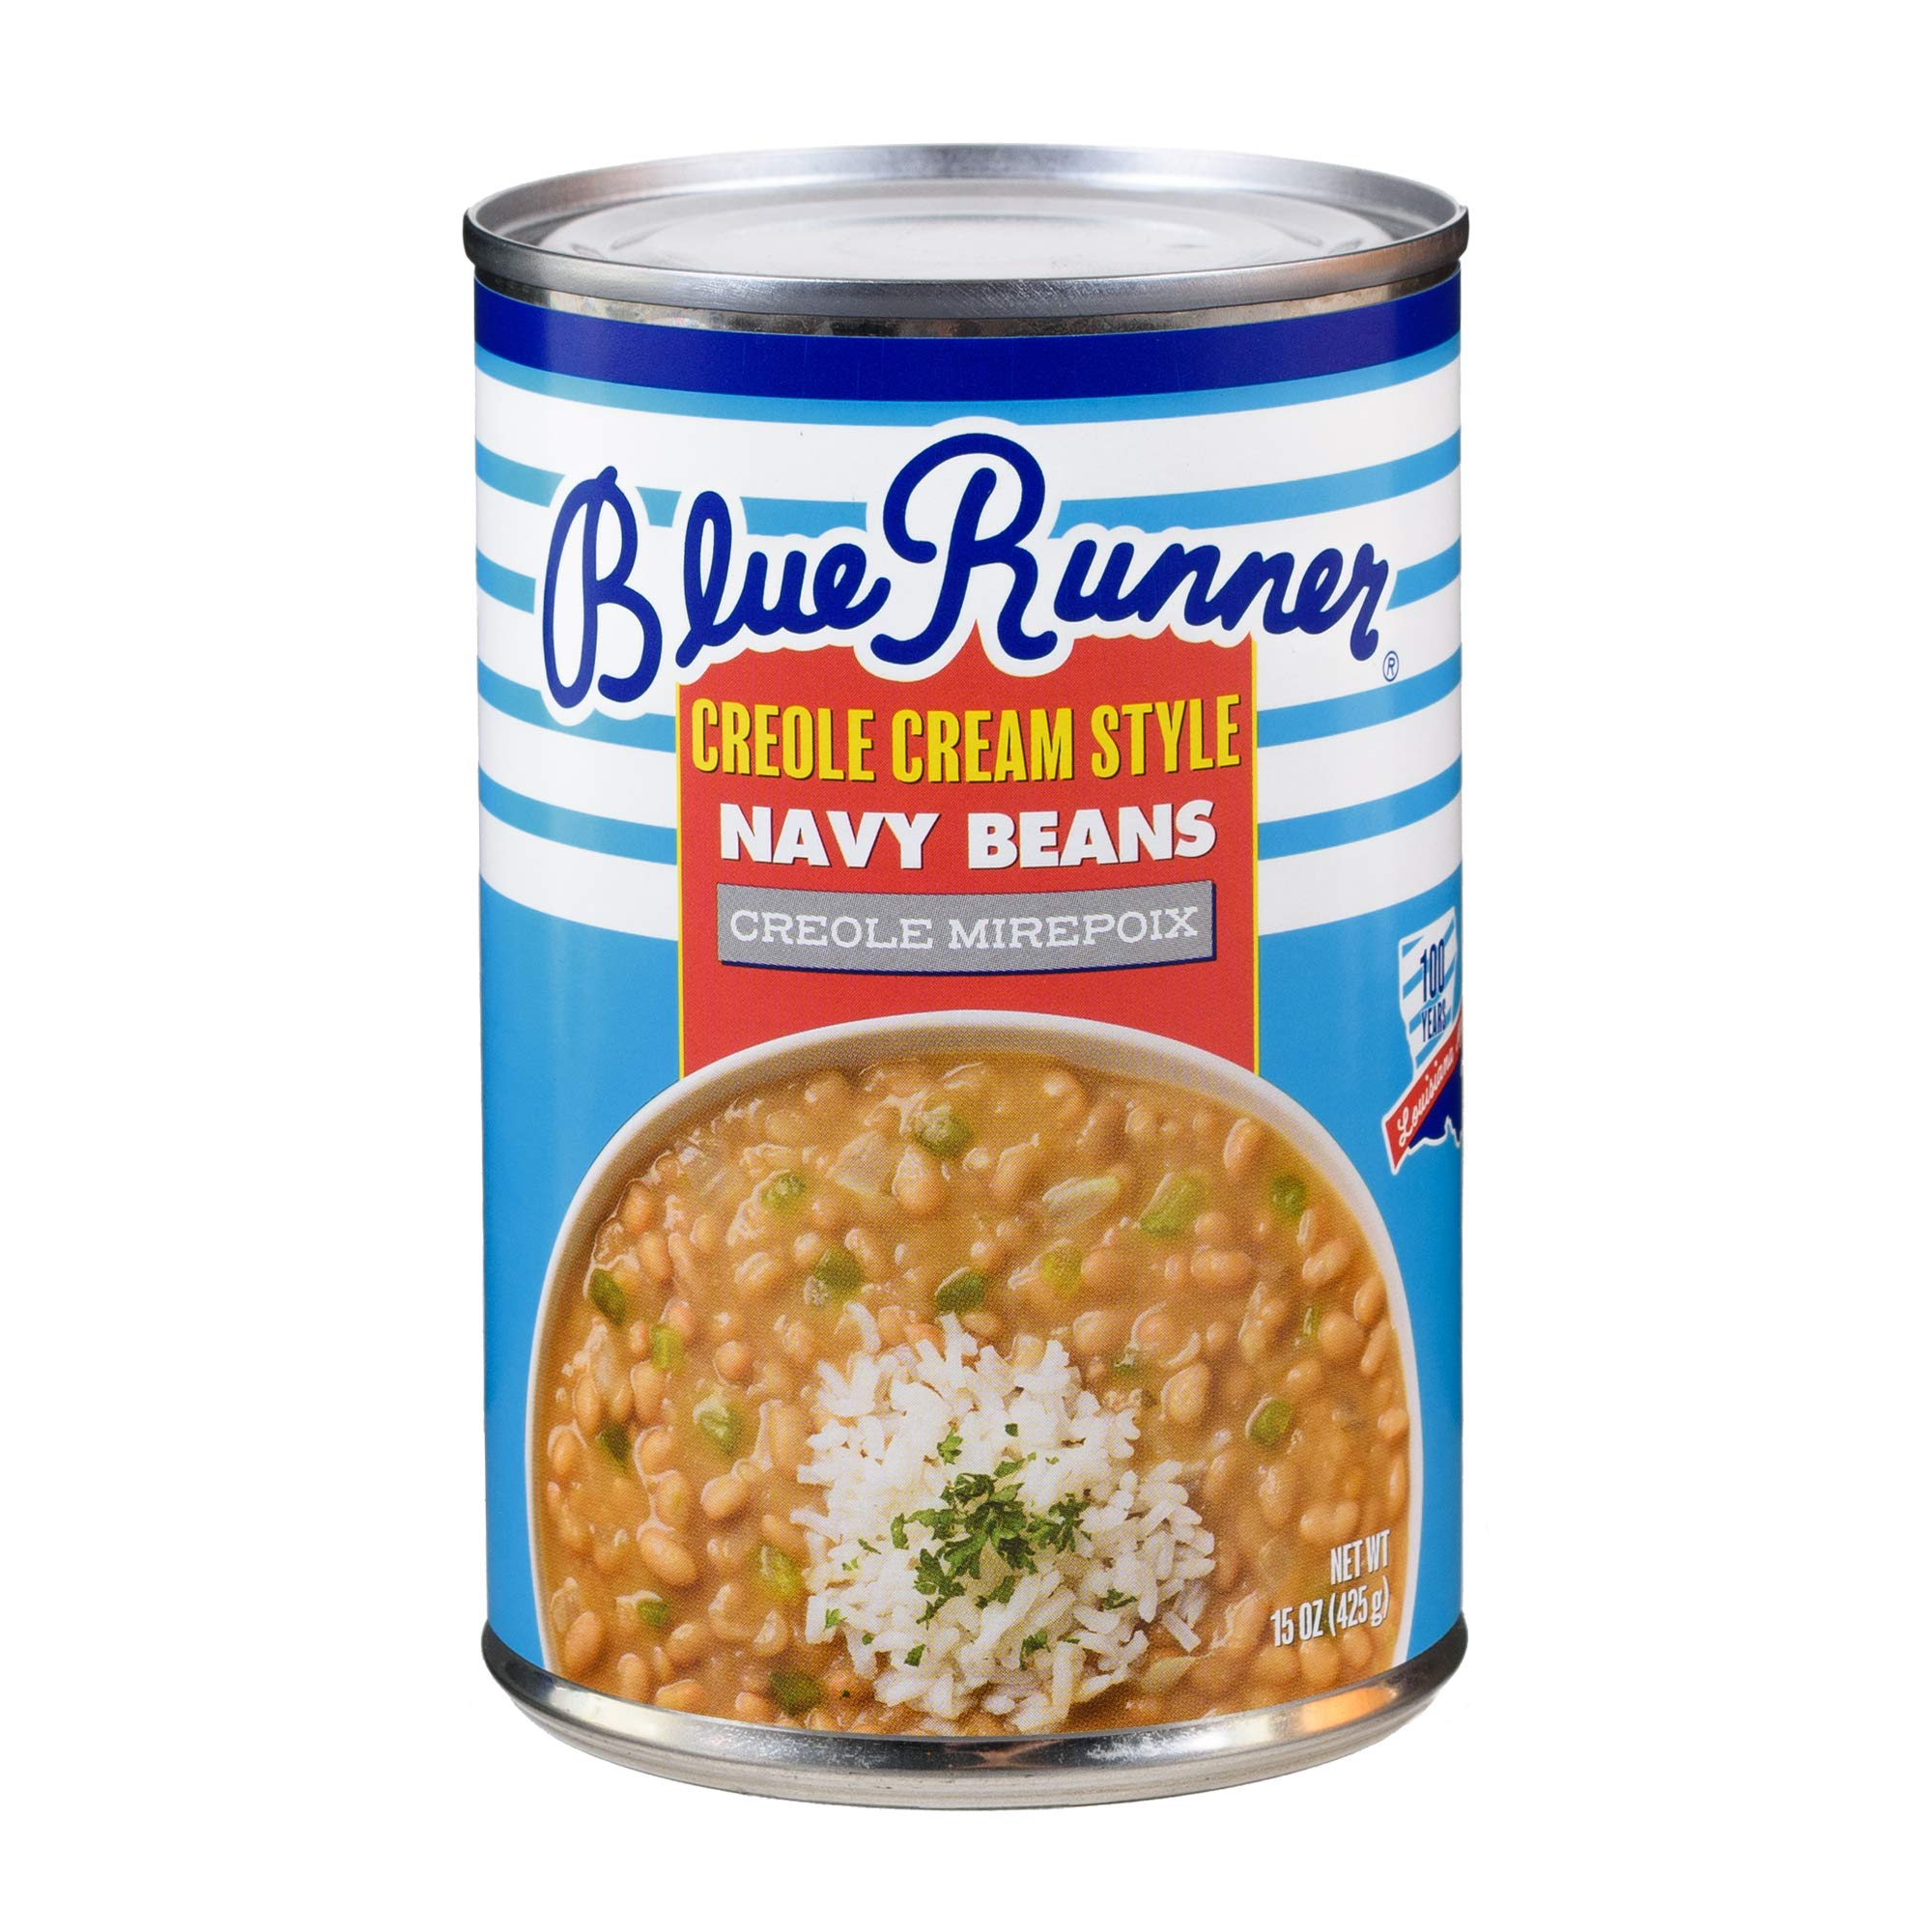 Blue Runner Creole Cream Style Navy Beans With Creole Mirepoix (6 pack)